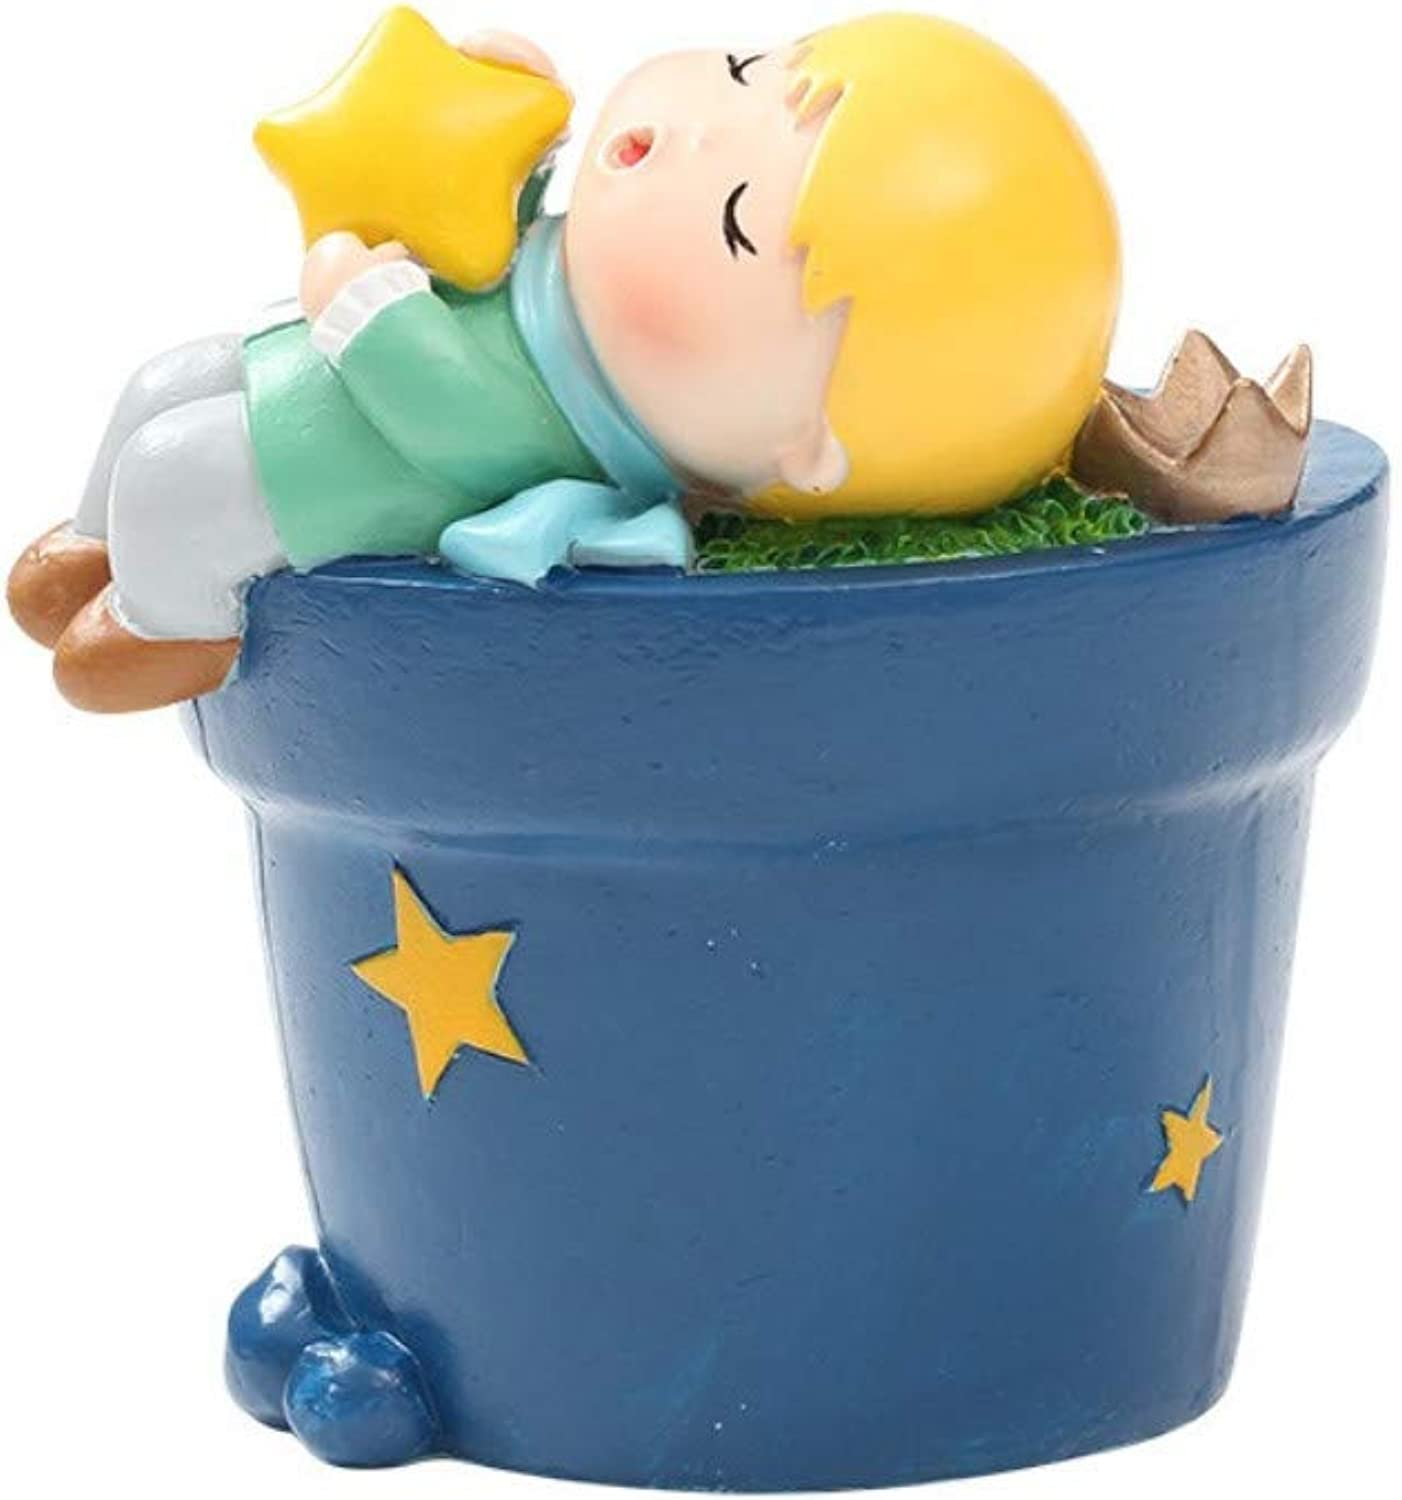 JIAHUADE Cartoon Fairy Tale Little Prince Creative Crafts Resin Fleshy Flower Pot Planting Gifts,4